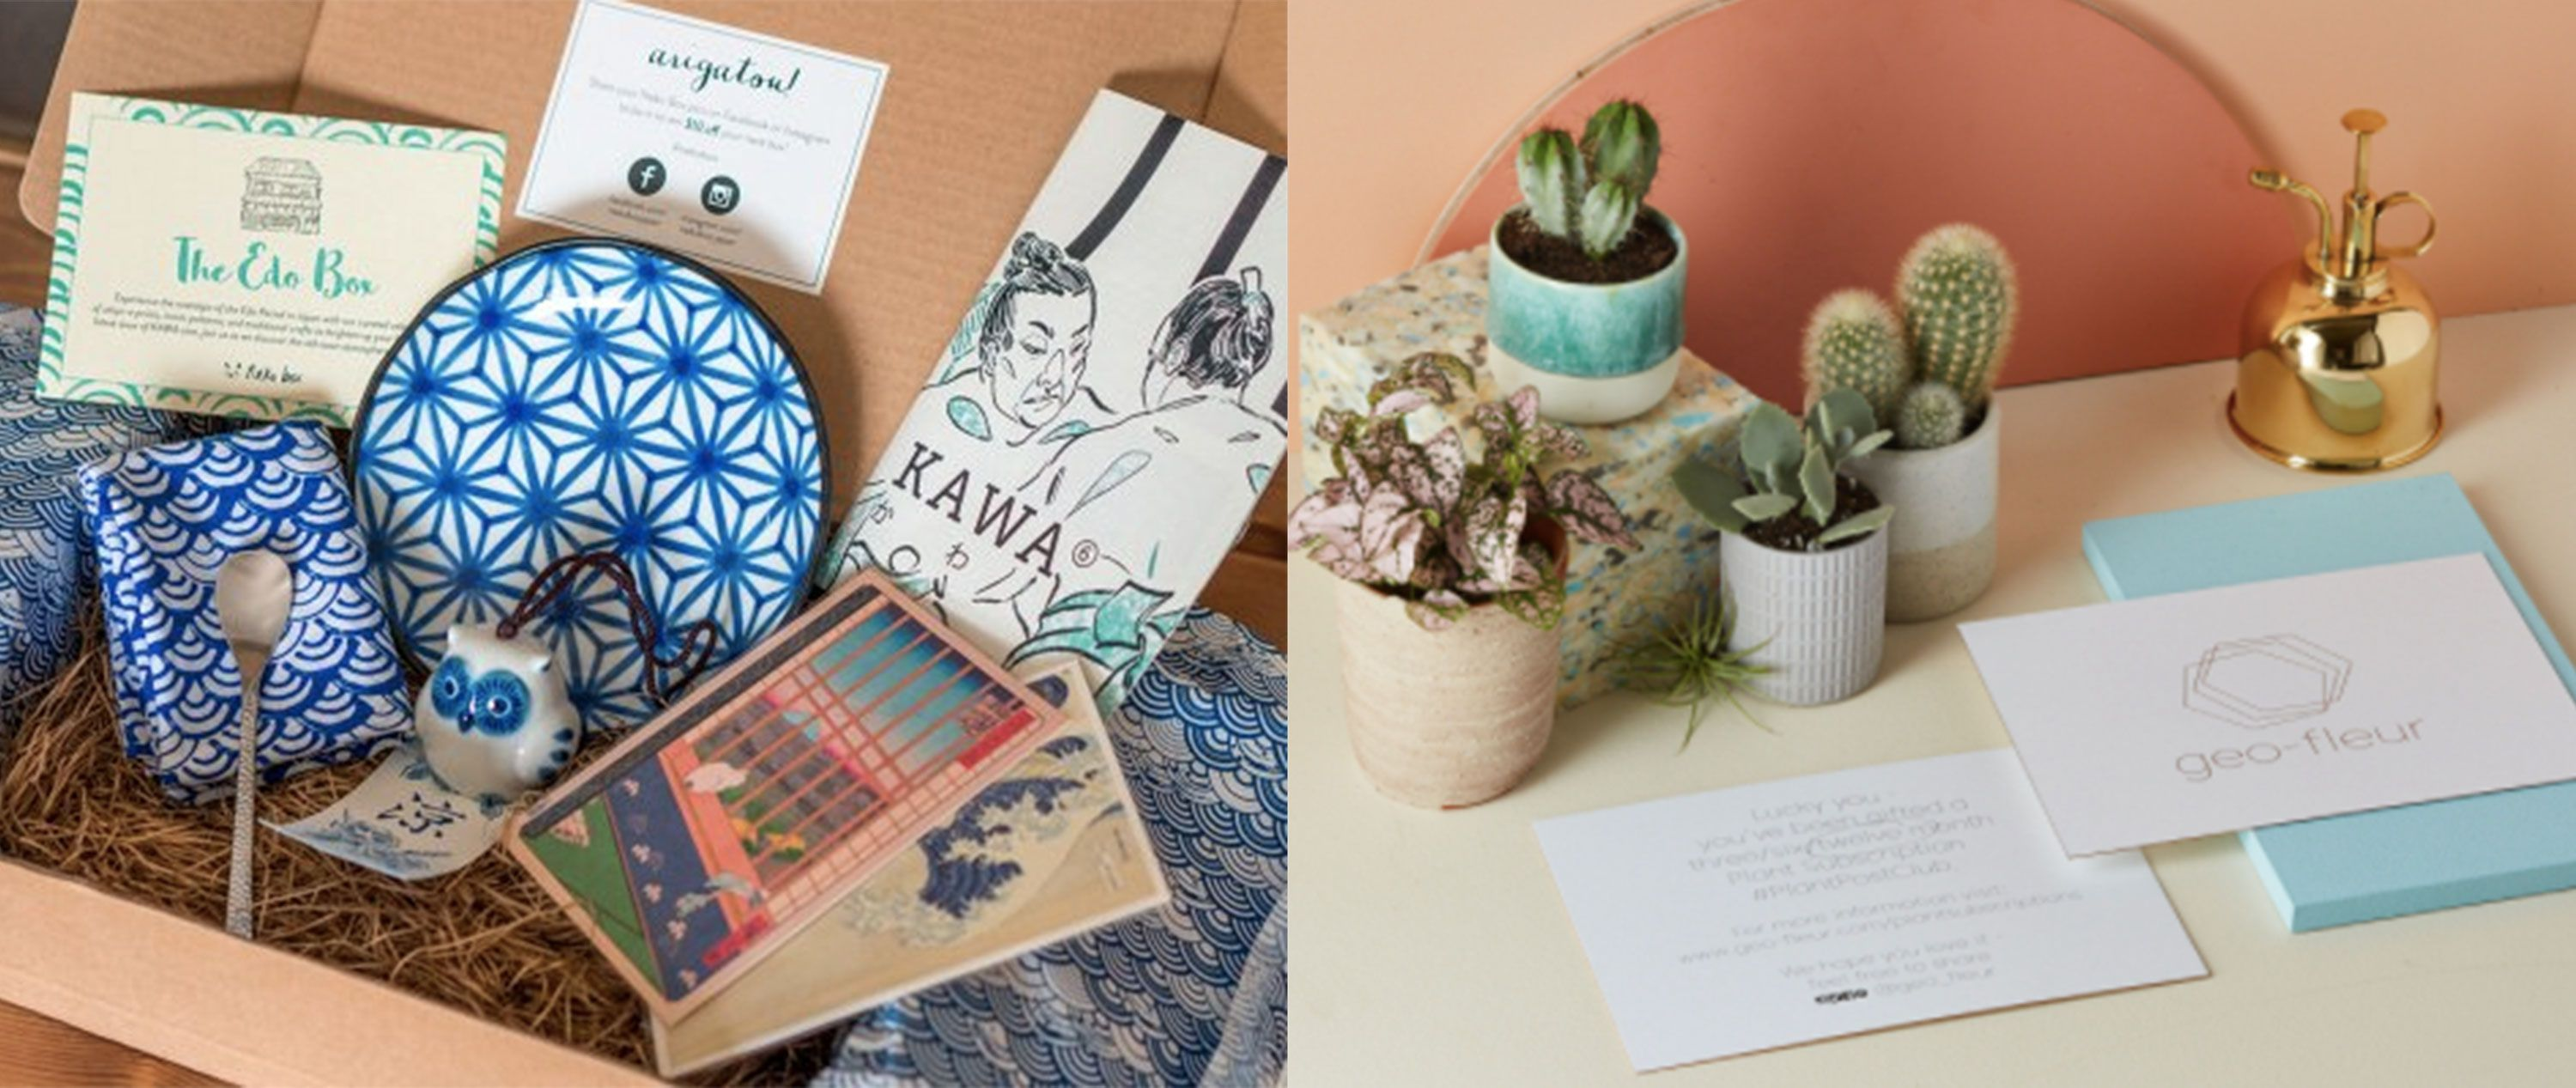 5 best homeware subscription boxes for interiors lovers rh housebeautiful com Clean Subscription Box Designs Subscription Box Packaging